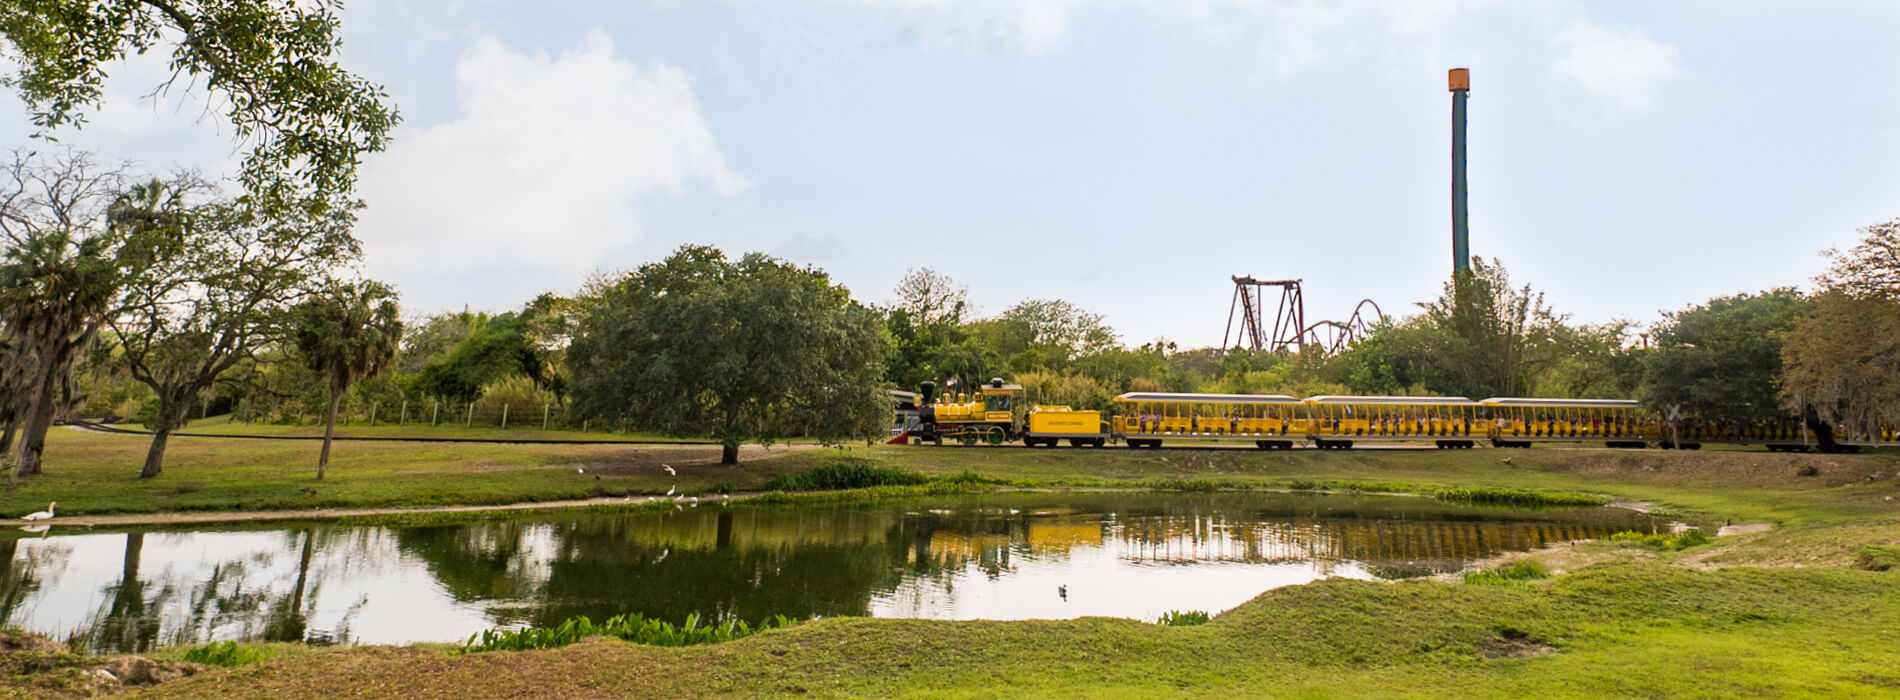 Ride the Serengeti Railway at Busch Gardens Tampa Bay